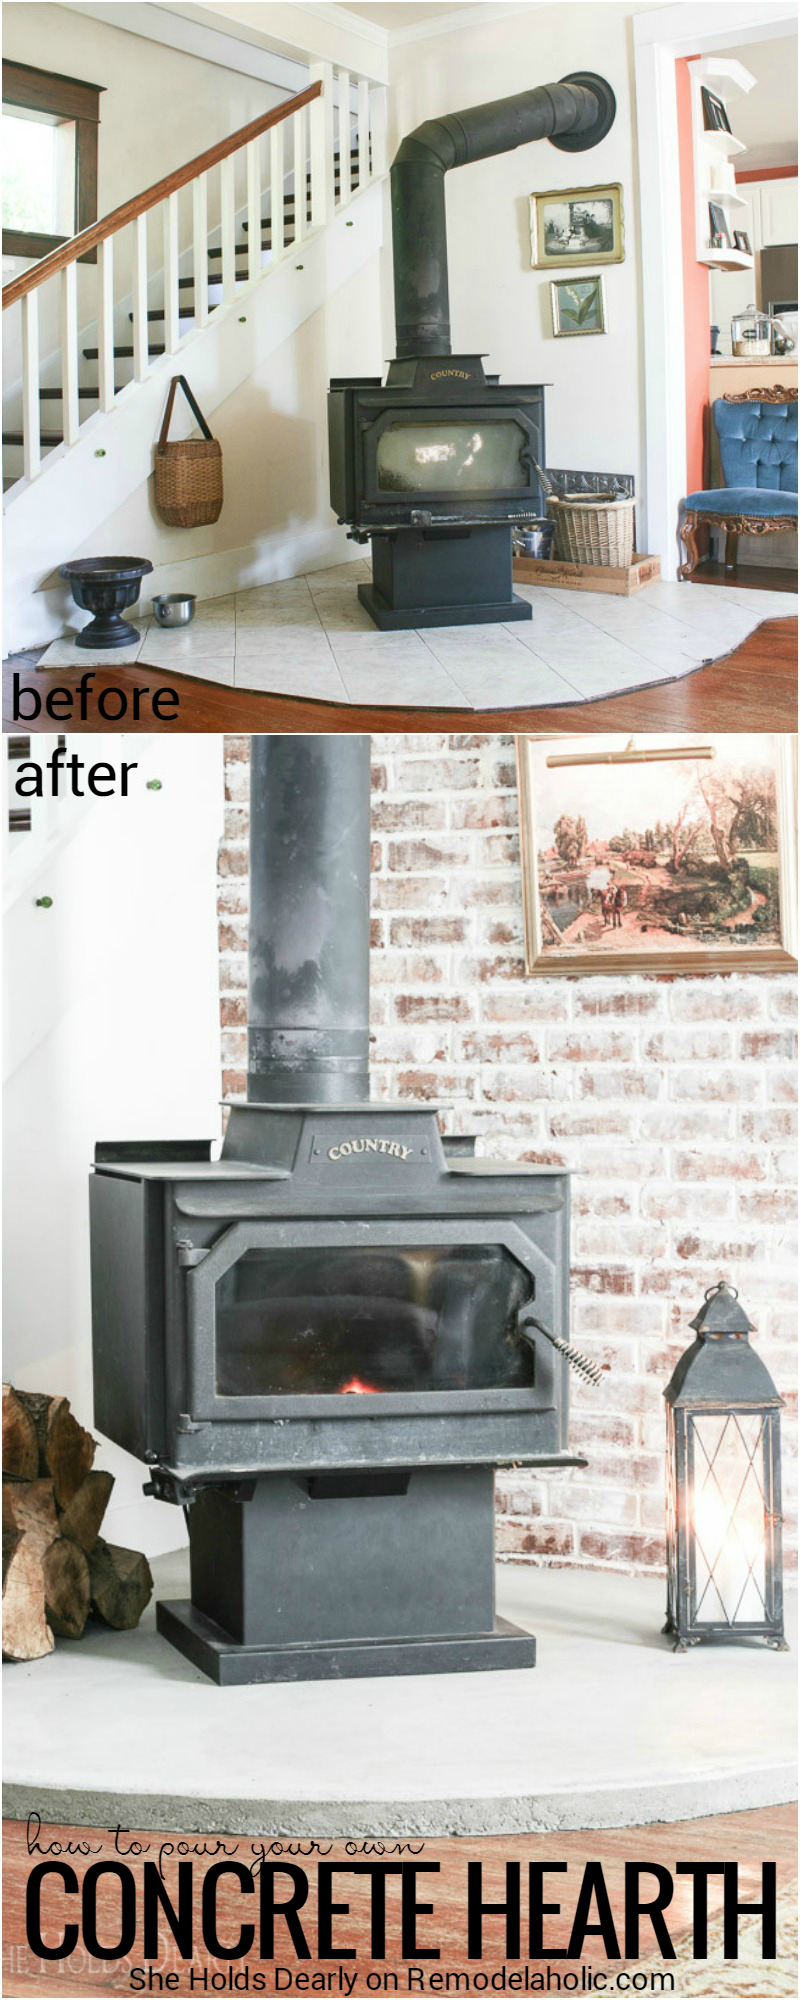 Remodelaholic simple diy concrete hearth over tile see how sarah replaced a dated and quirky tile hearth with a simple and inexpensive diy solutioingenieria Choice Image